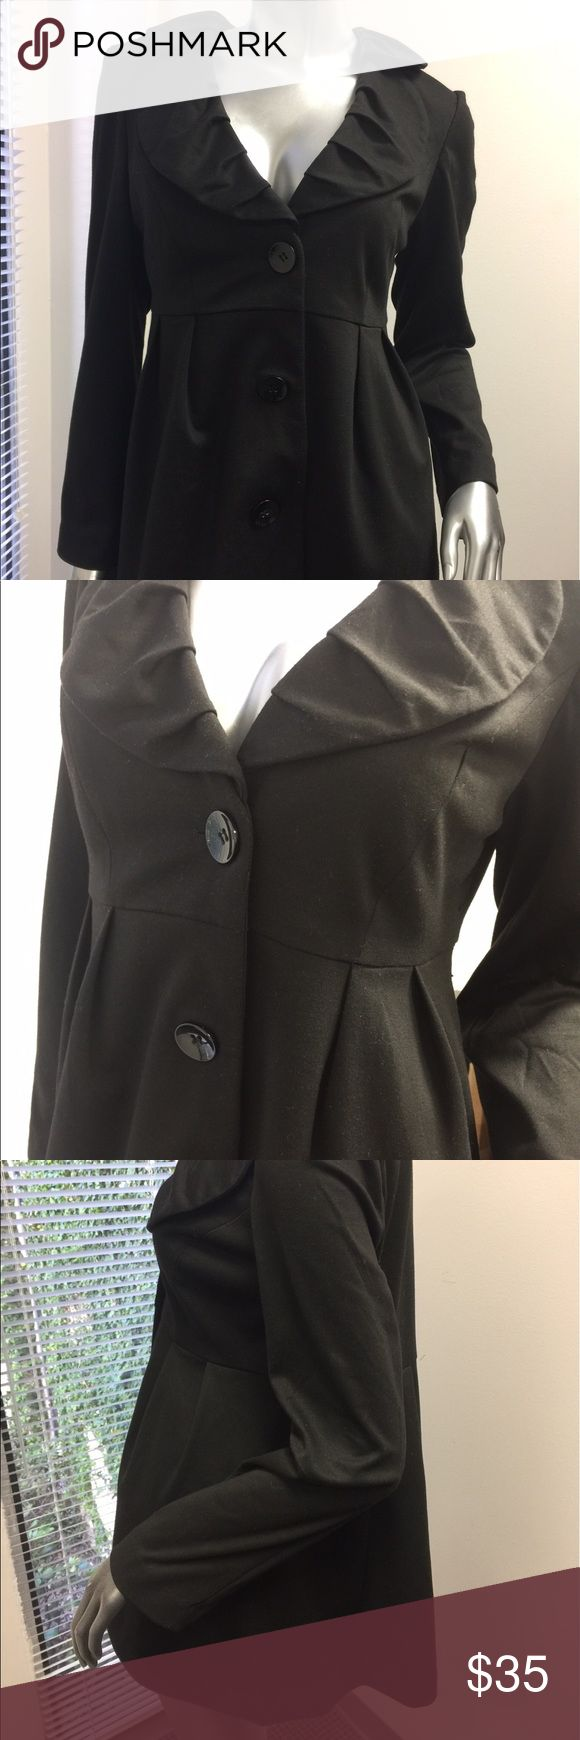 Marina luna black lined jacket The Absolute Jacket... it's the one that goes with absolutely everything!   Ruffles, pleats, buttons that bring fun fashion to any wardrobe! Jackets & Coats Blazers